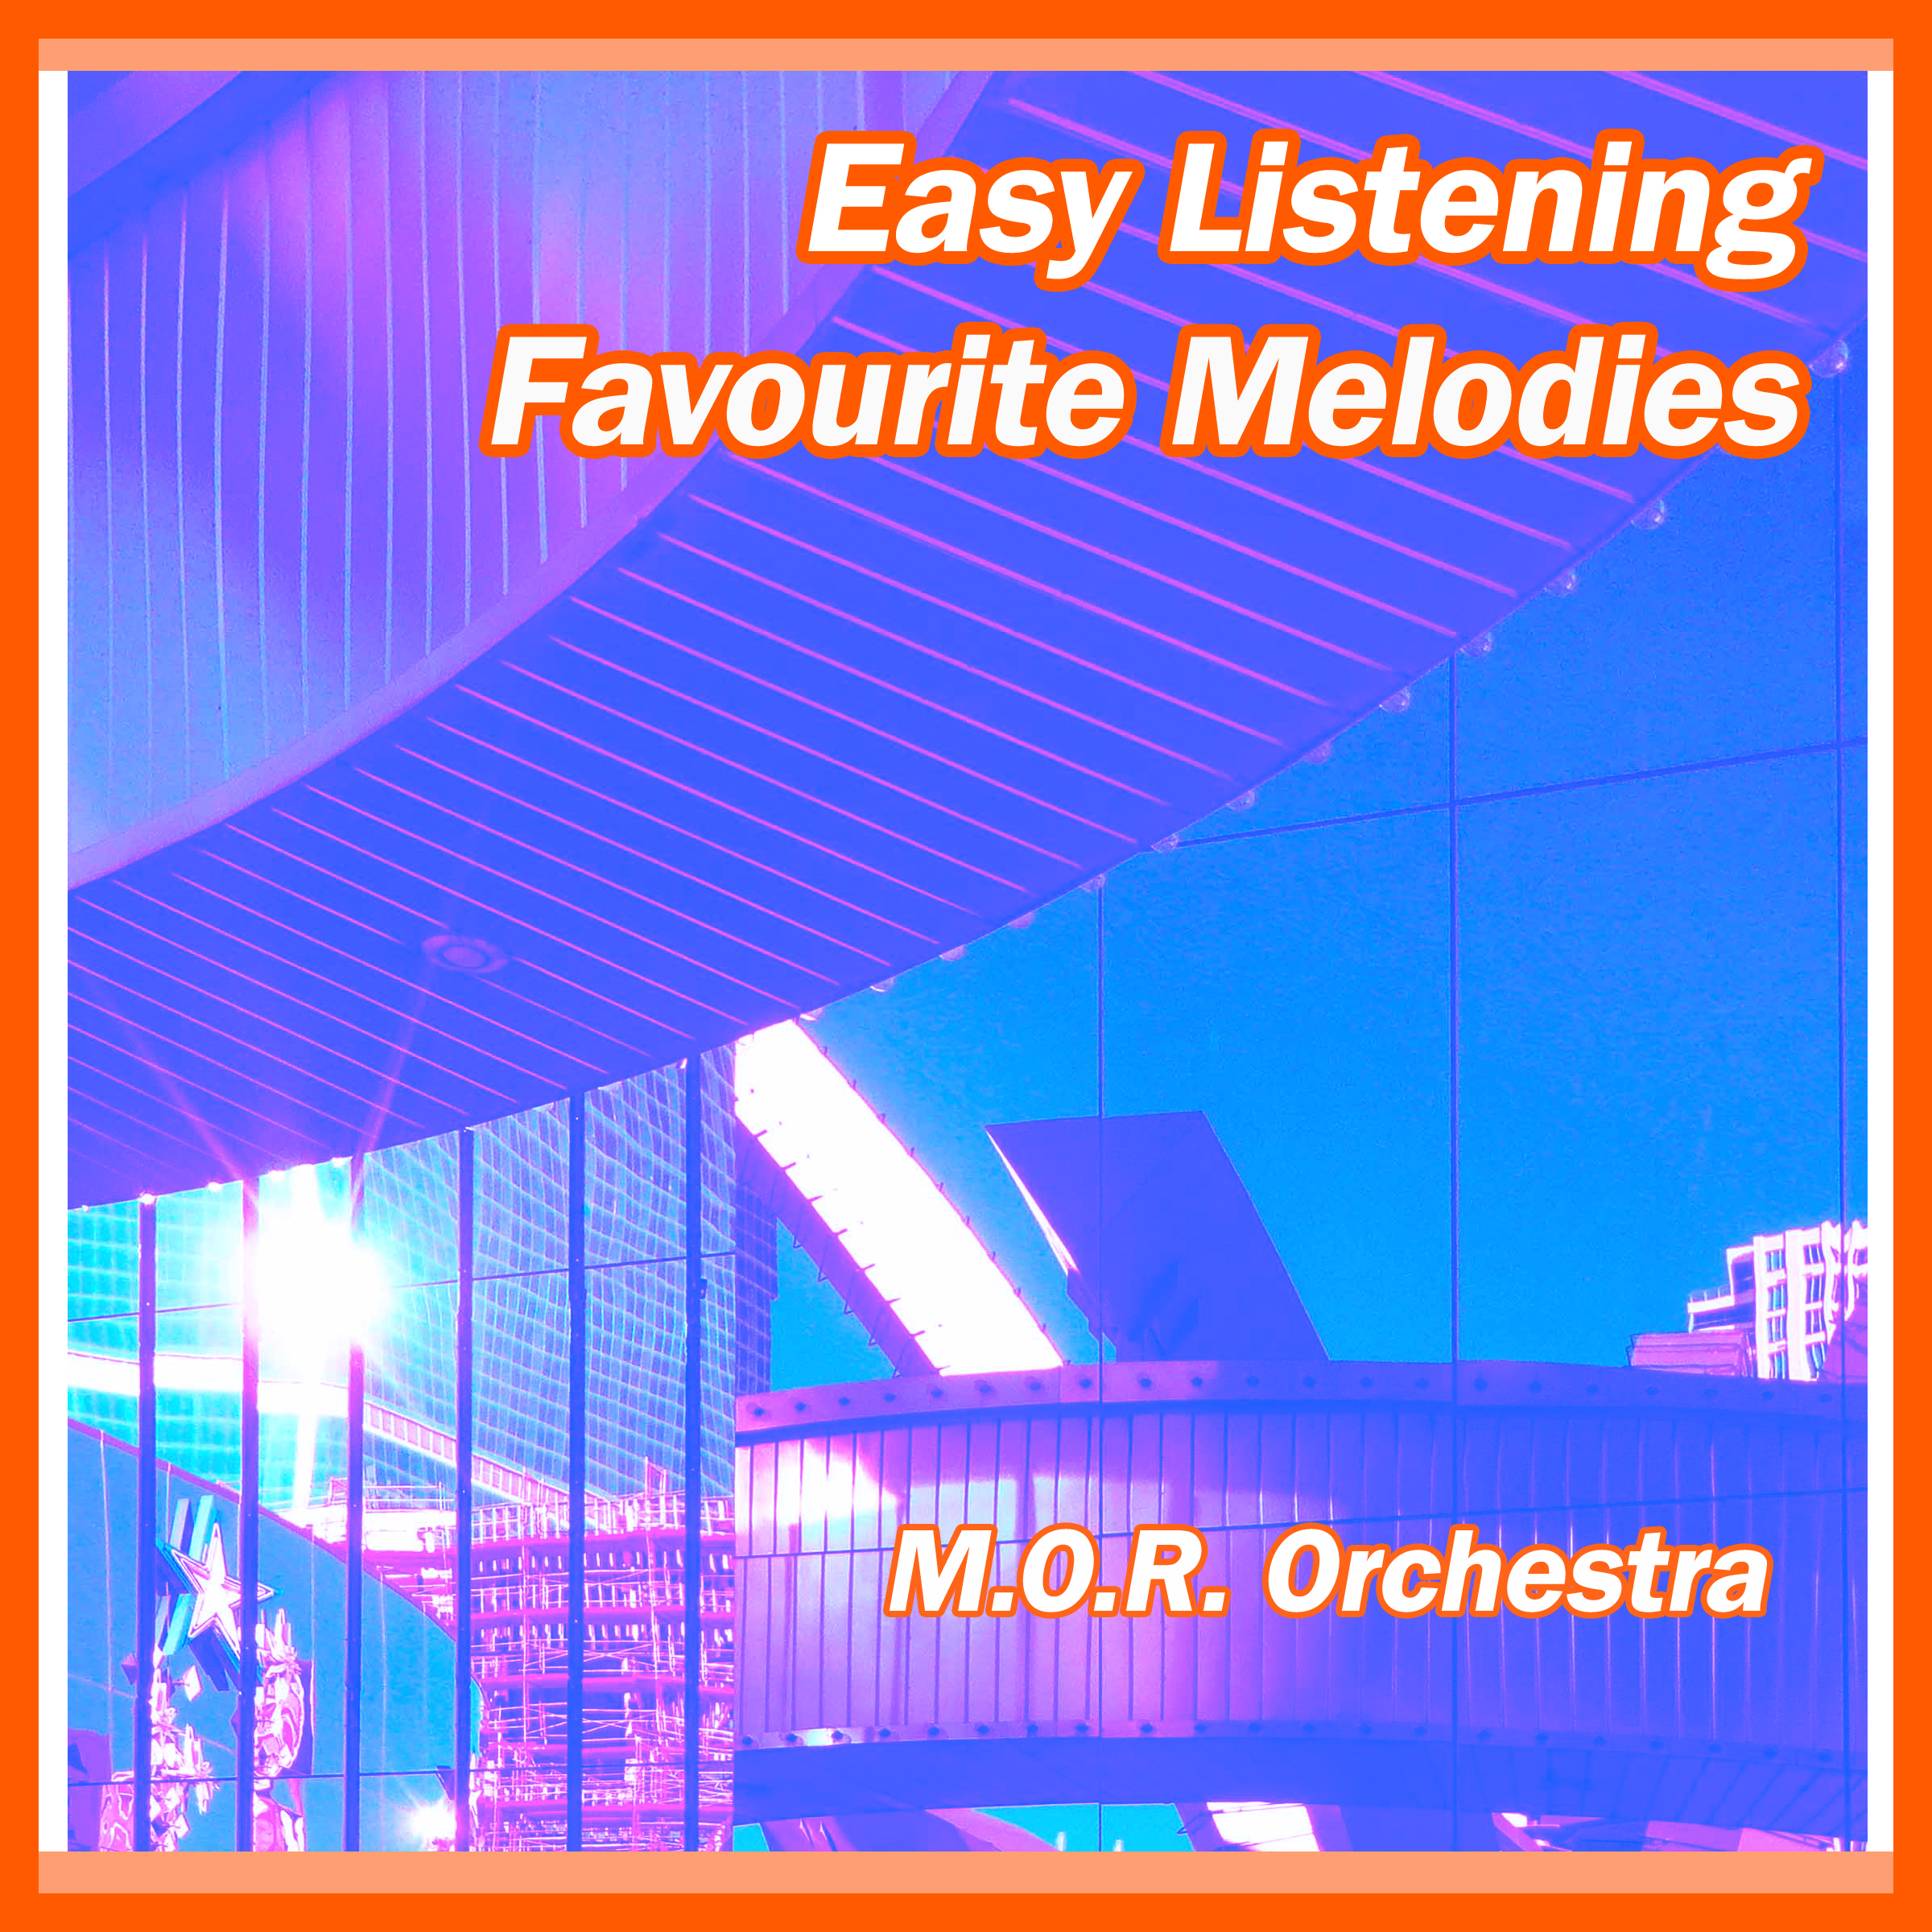 Easy Listening Favourite Melodies – M.O.R. Orchestra